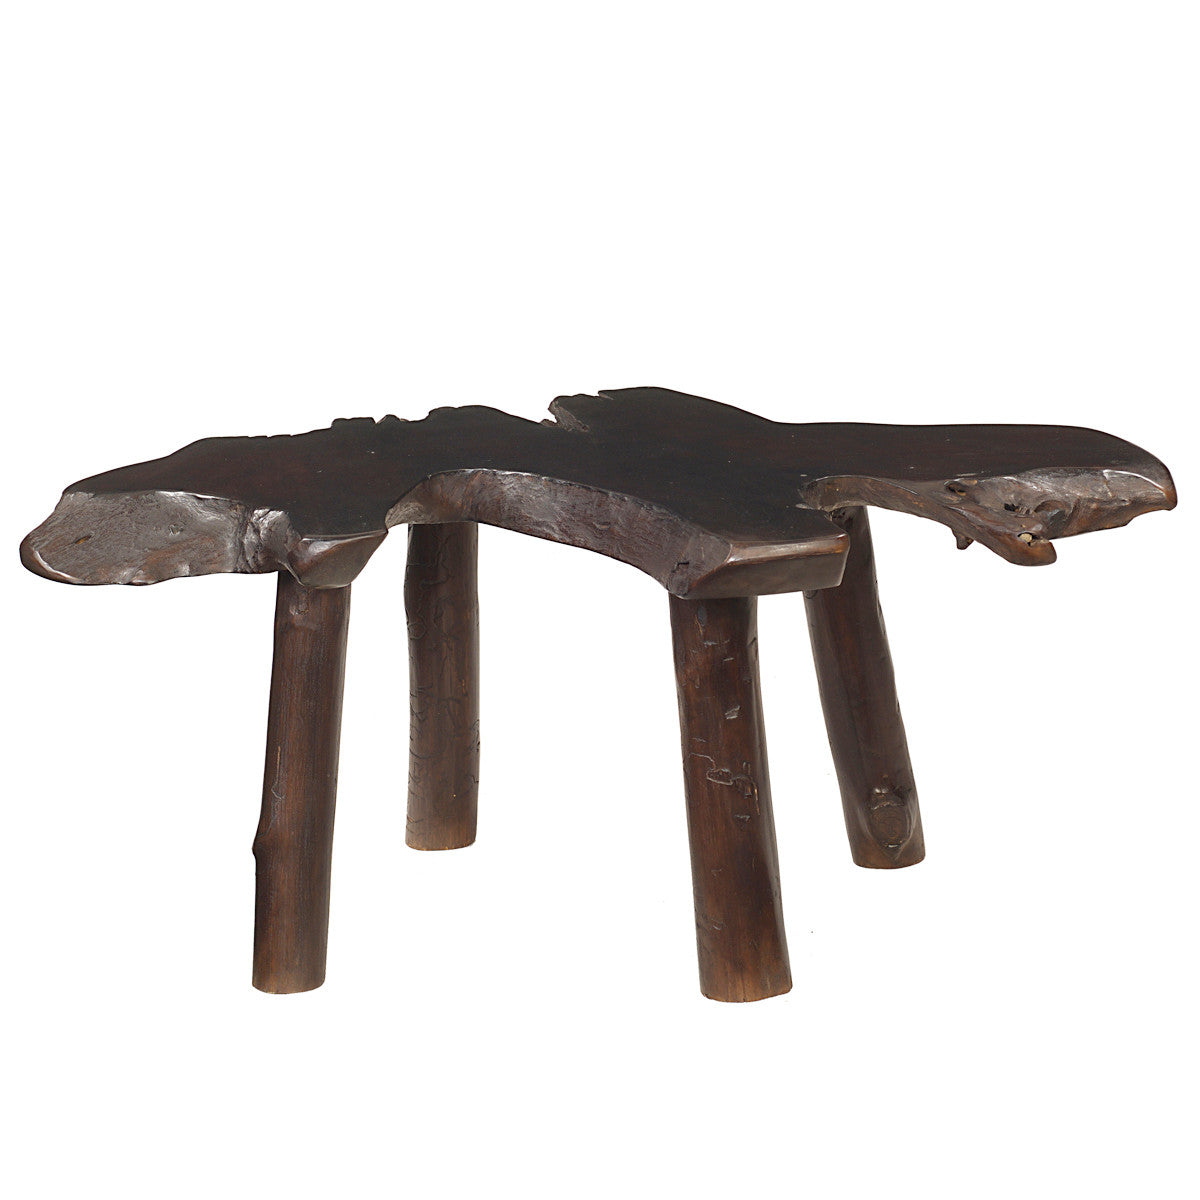 Teak Slab Coffee Table with Teak Legs, Dark Brown ...